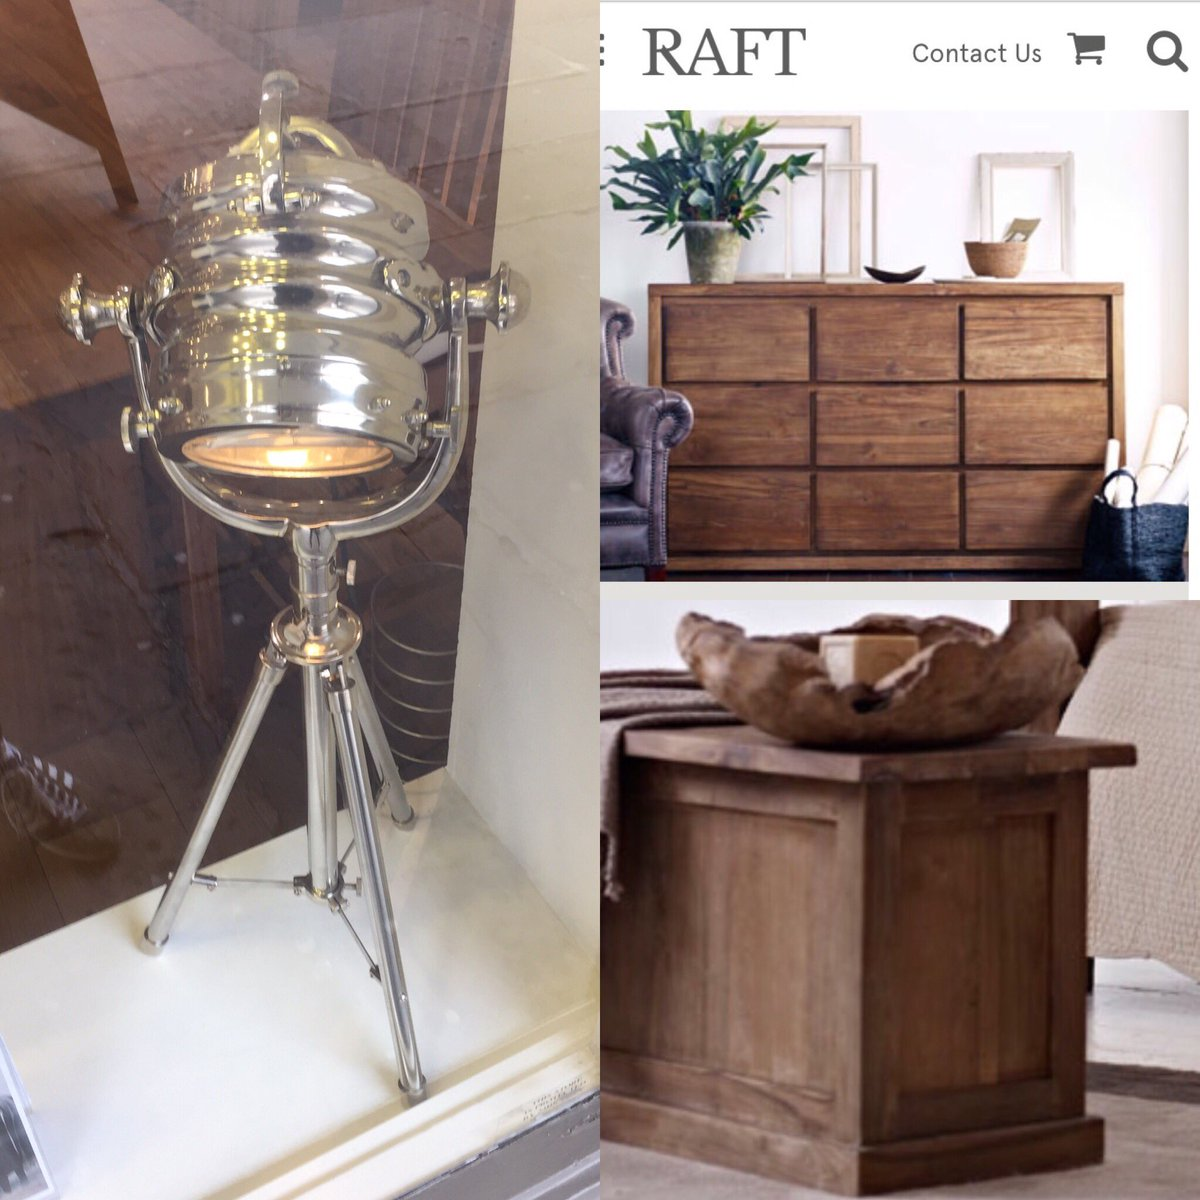 Discovered today @RaftFurniture has all I need #manifesting #wishlist #studio #light #blanket #box #chest of #drawers  #visionboard<br>http://pic.twitter.com/hfalEClIDb